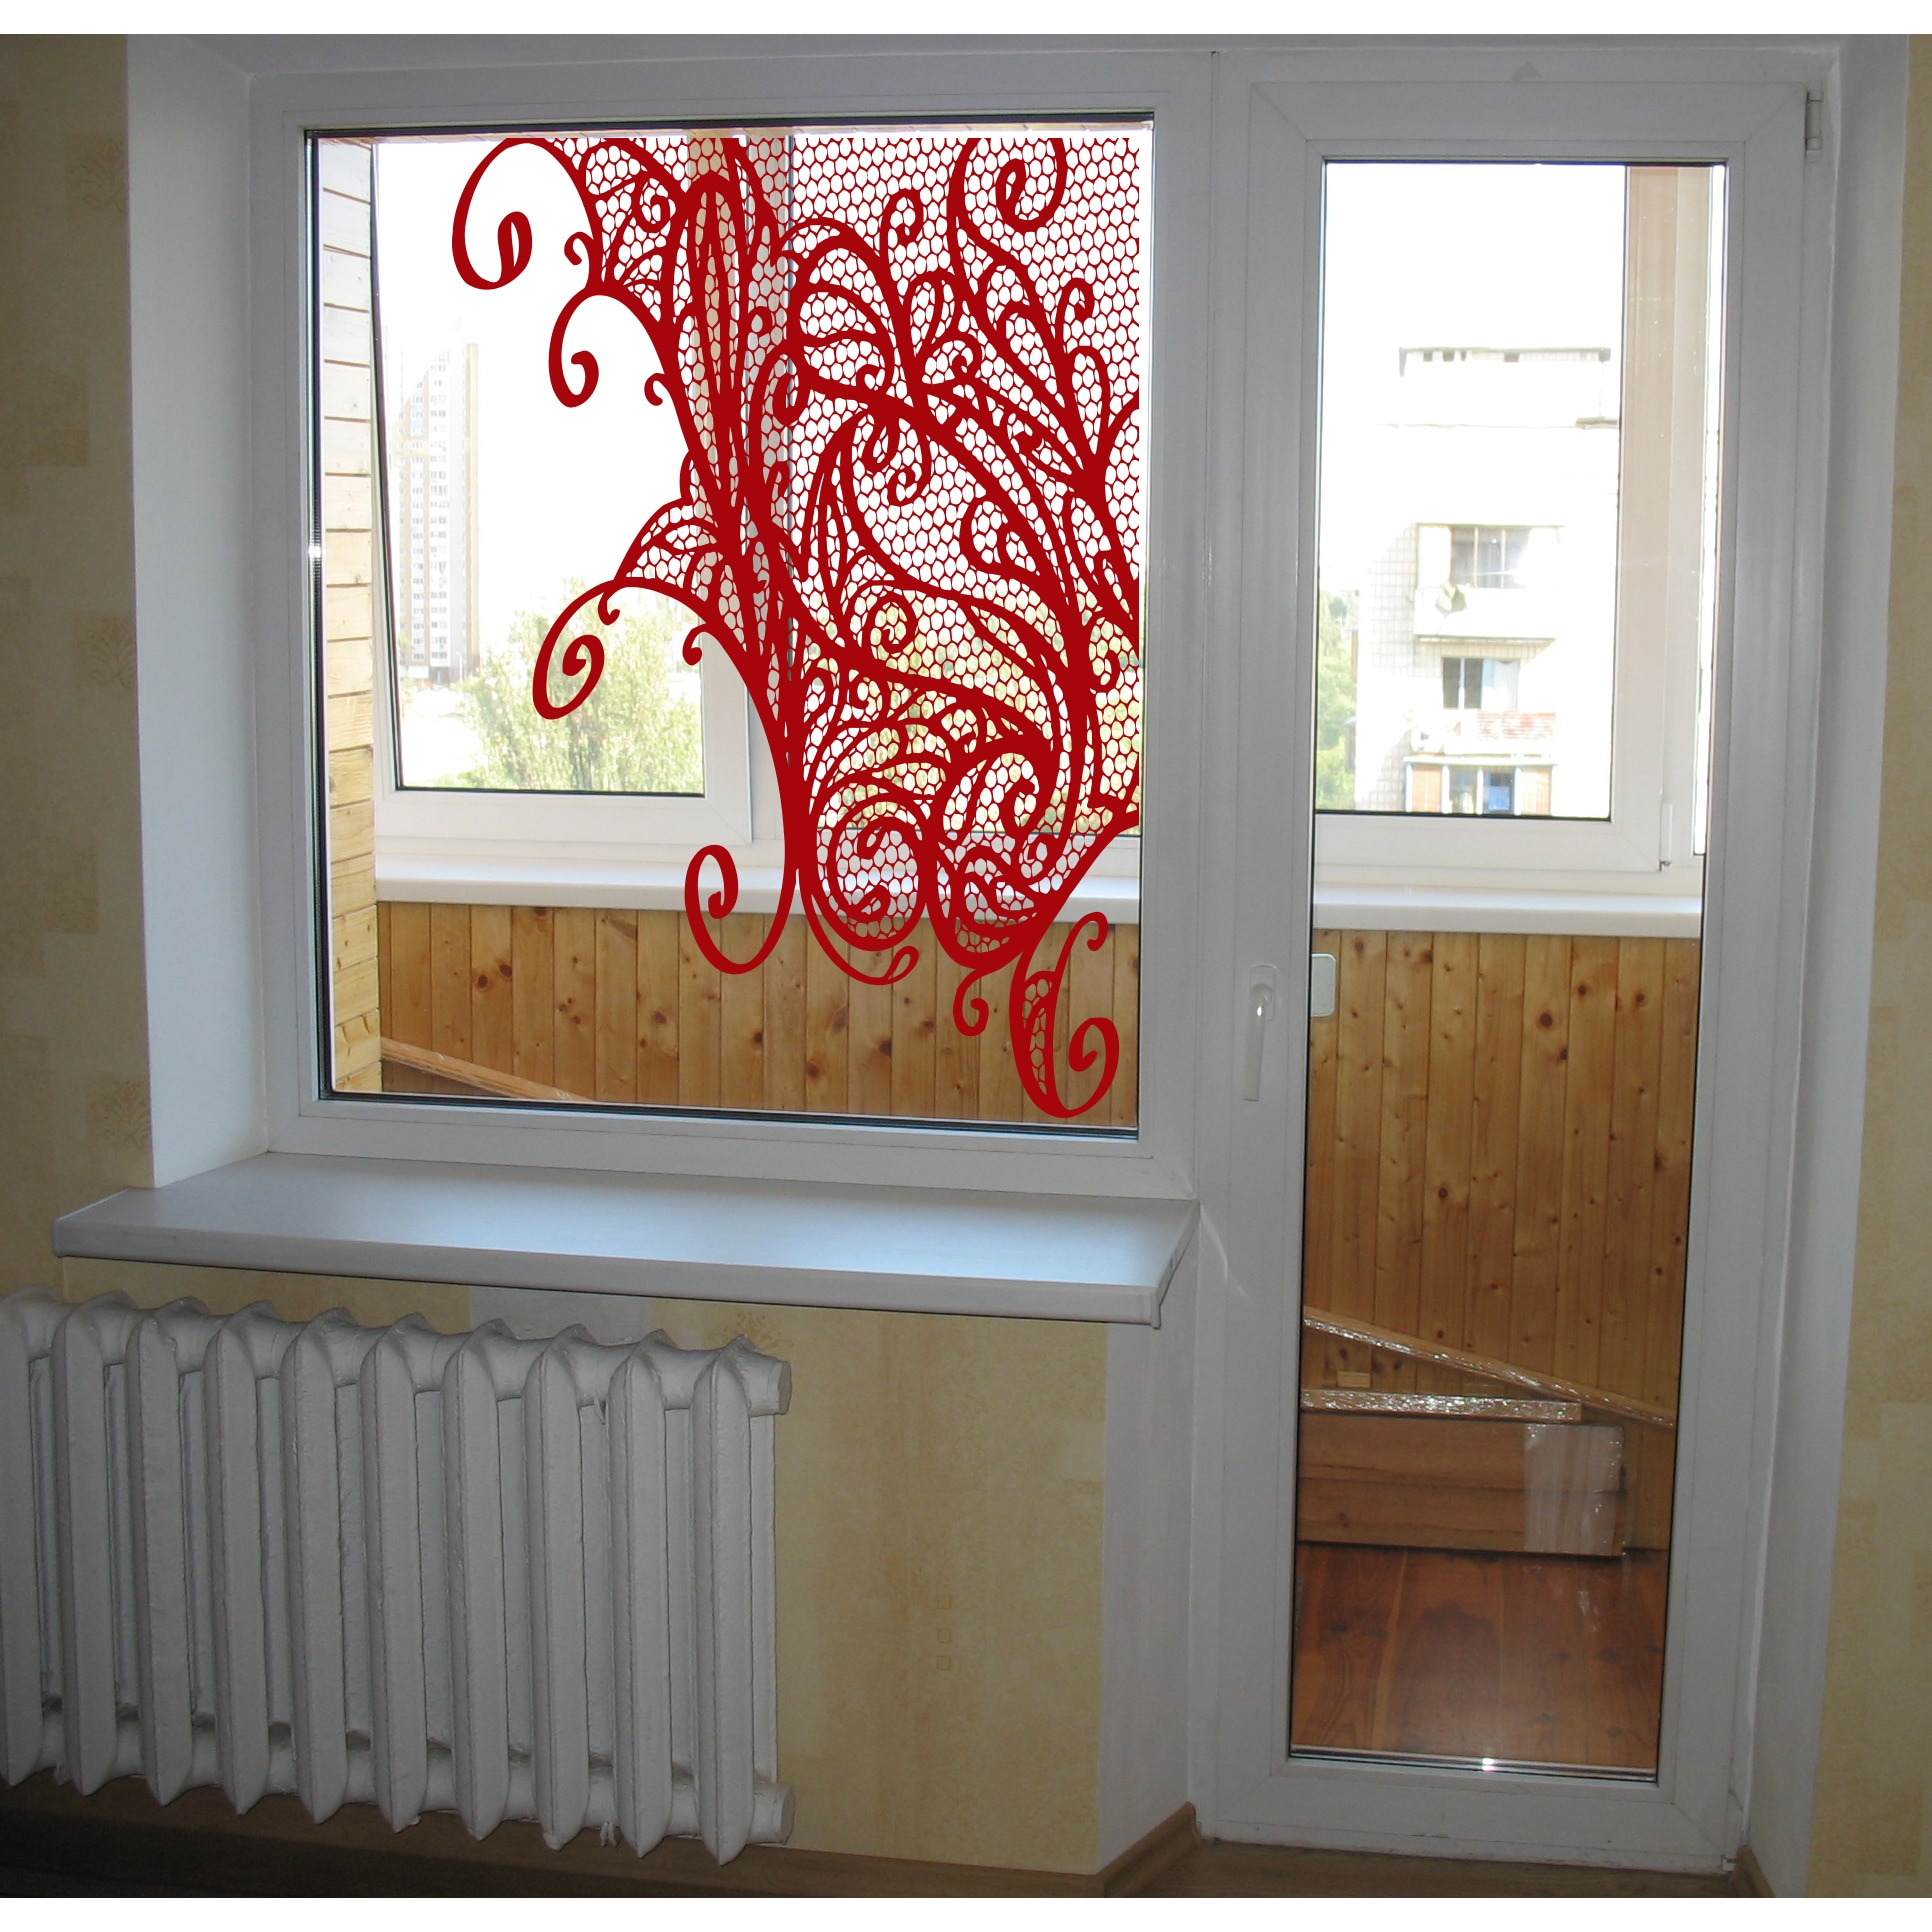 Template flowers window Wall Art Sticker Decal Red (22 in...